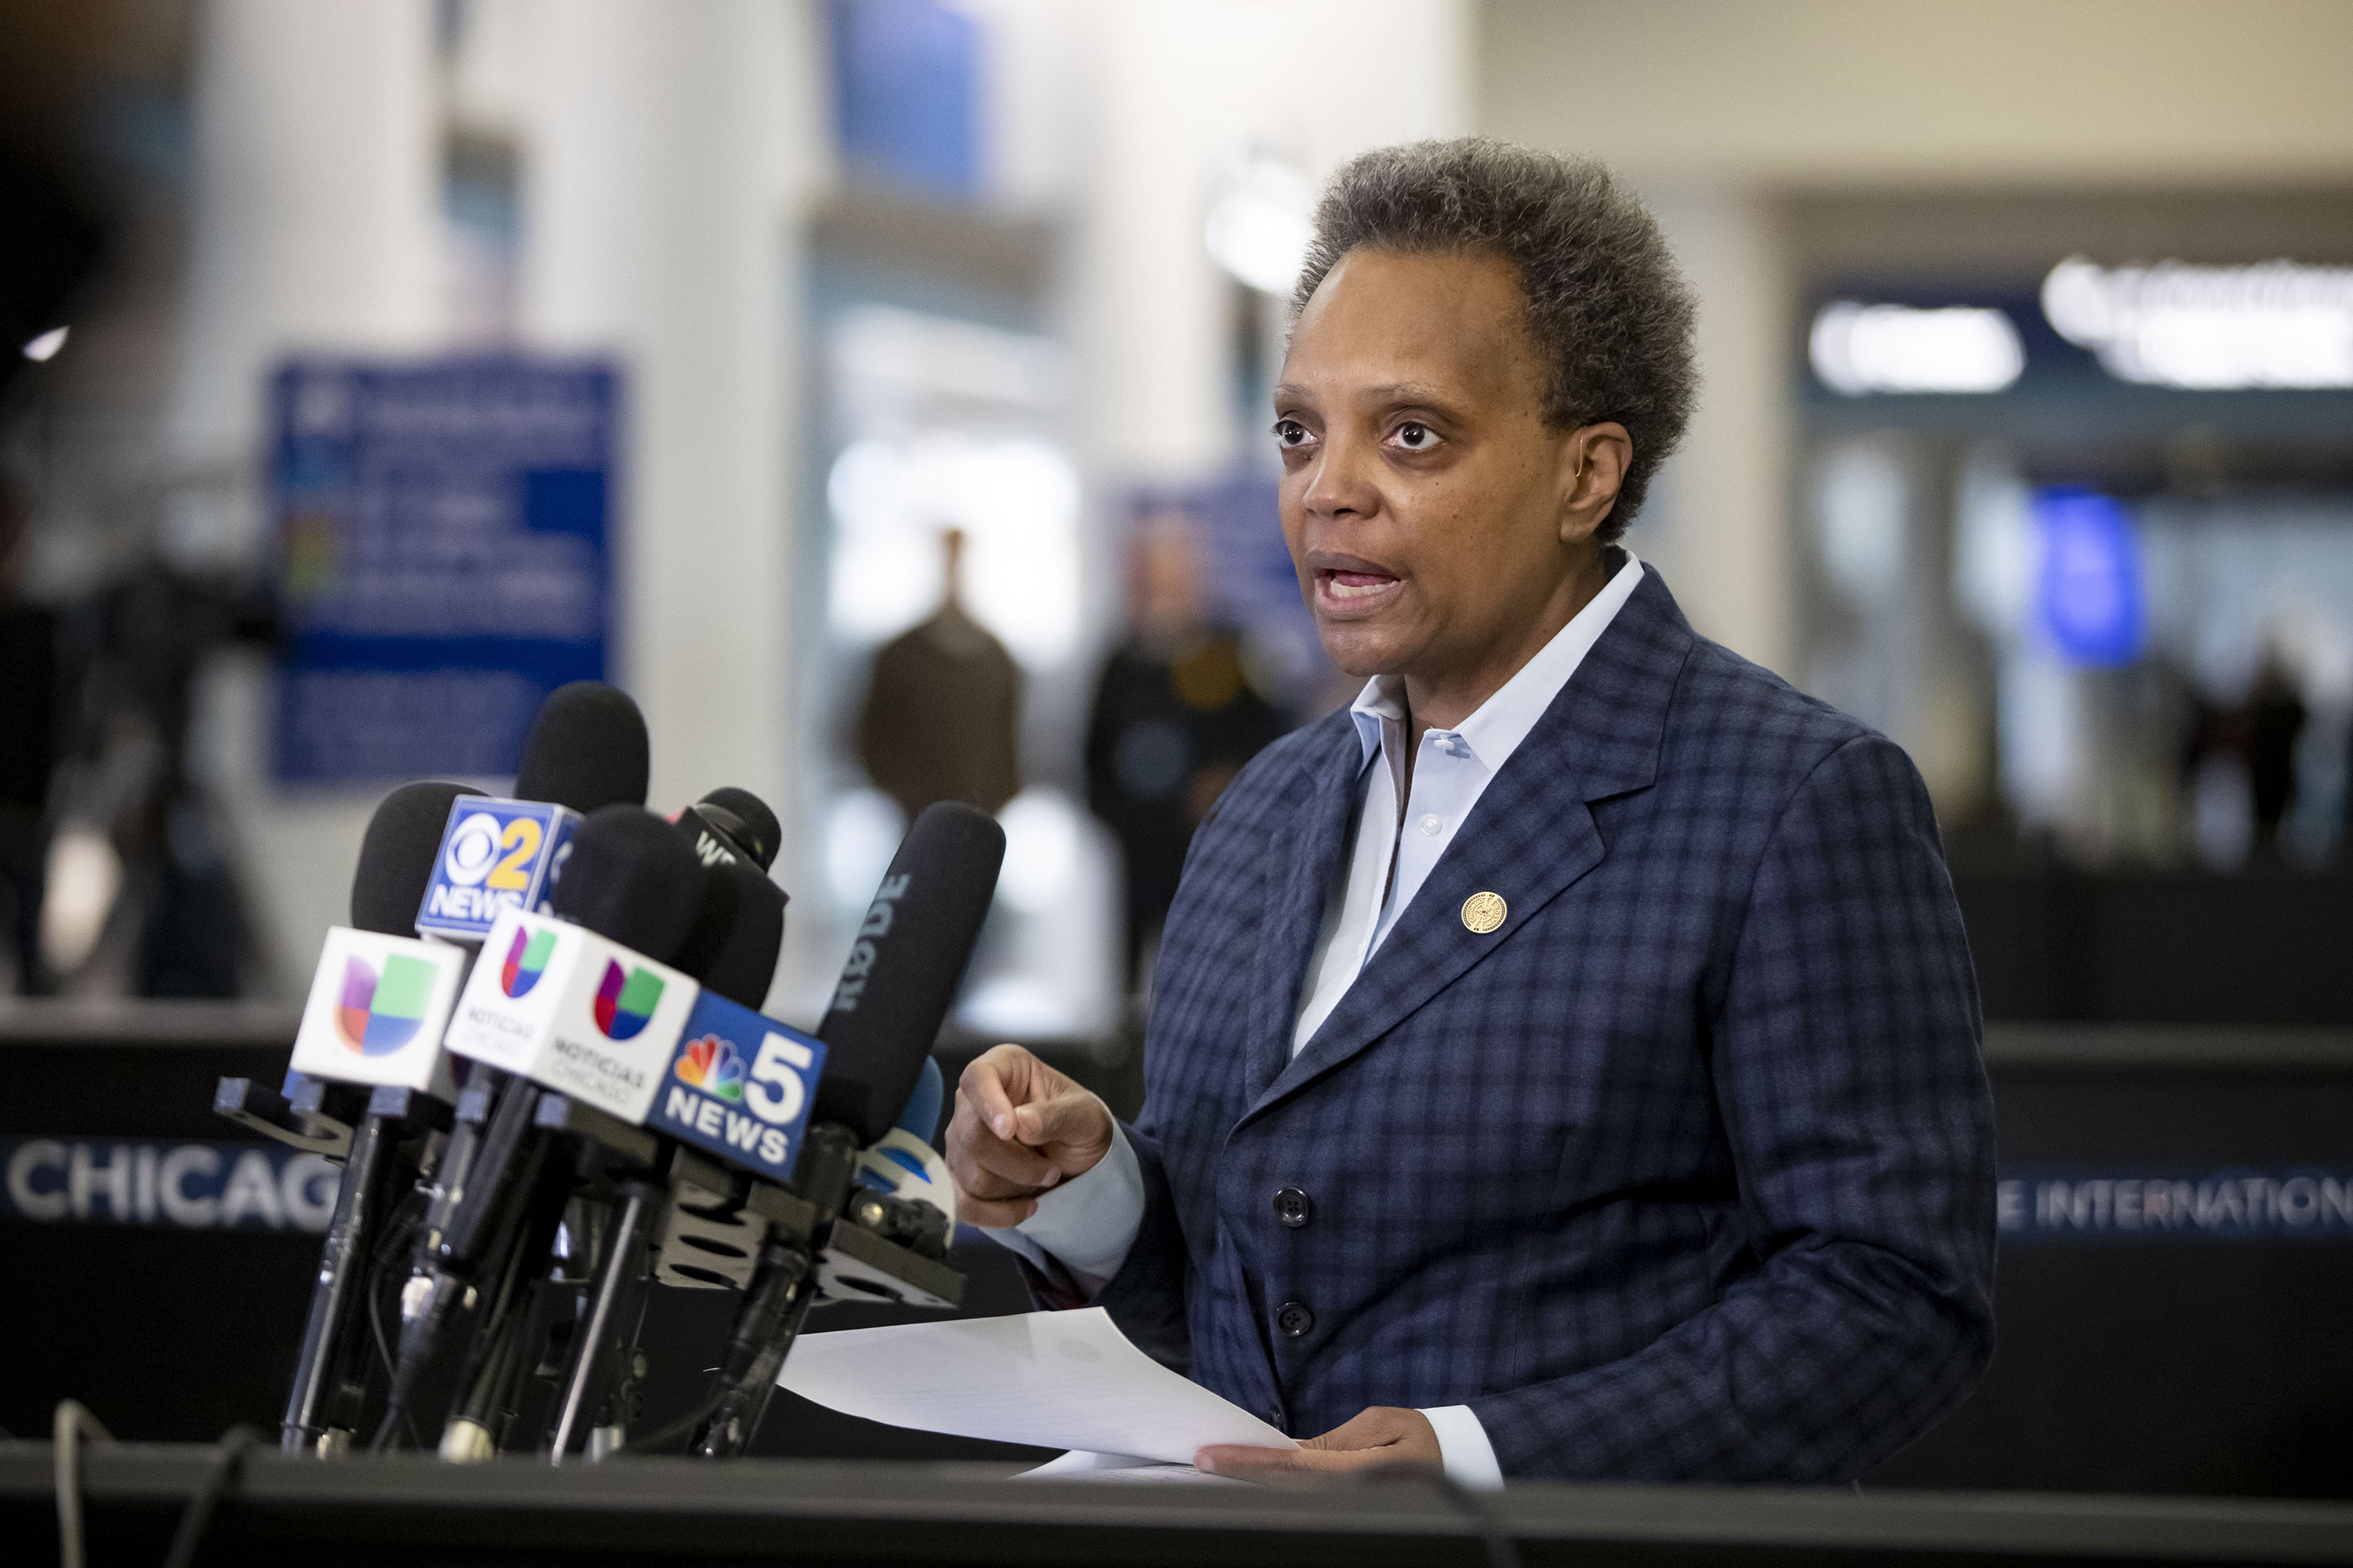 Chicago Mayor Lori Lightfoot to Trump: 'No one has time for your incompetence' over O'Hare crowding as customs struggles to keep up with influx of international passengers